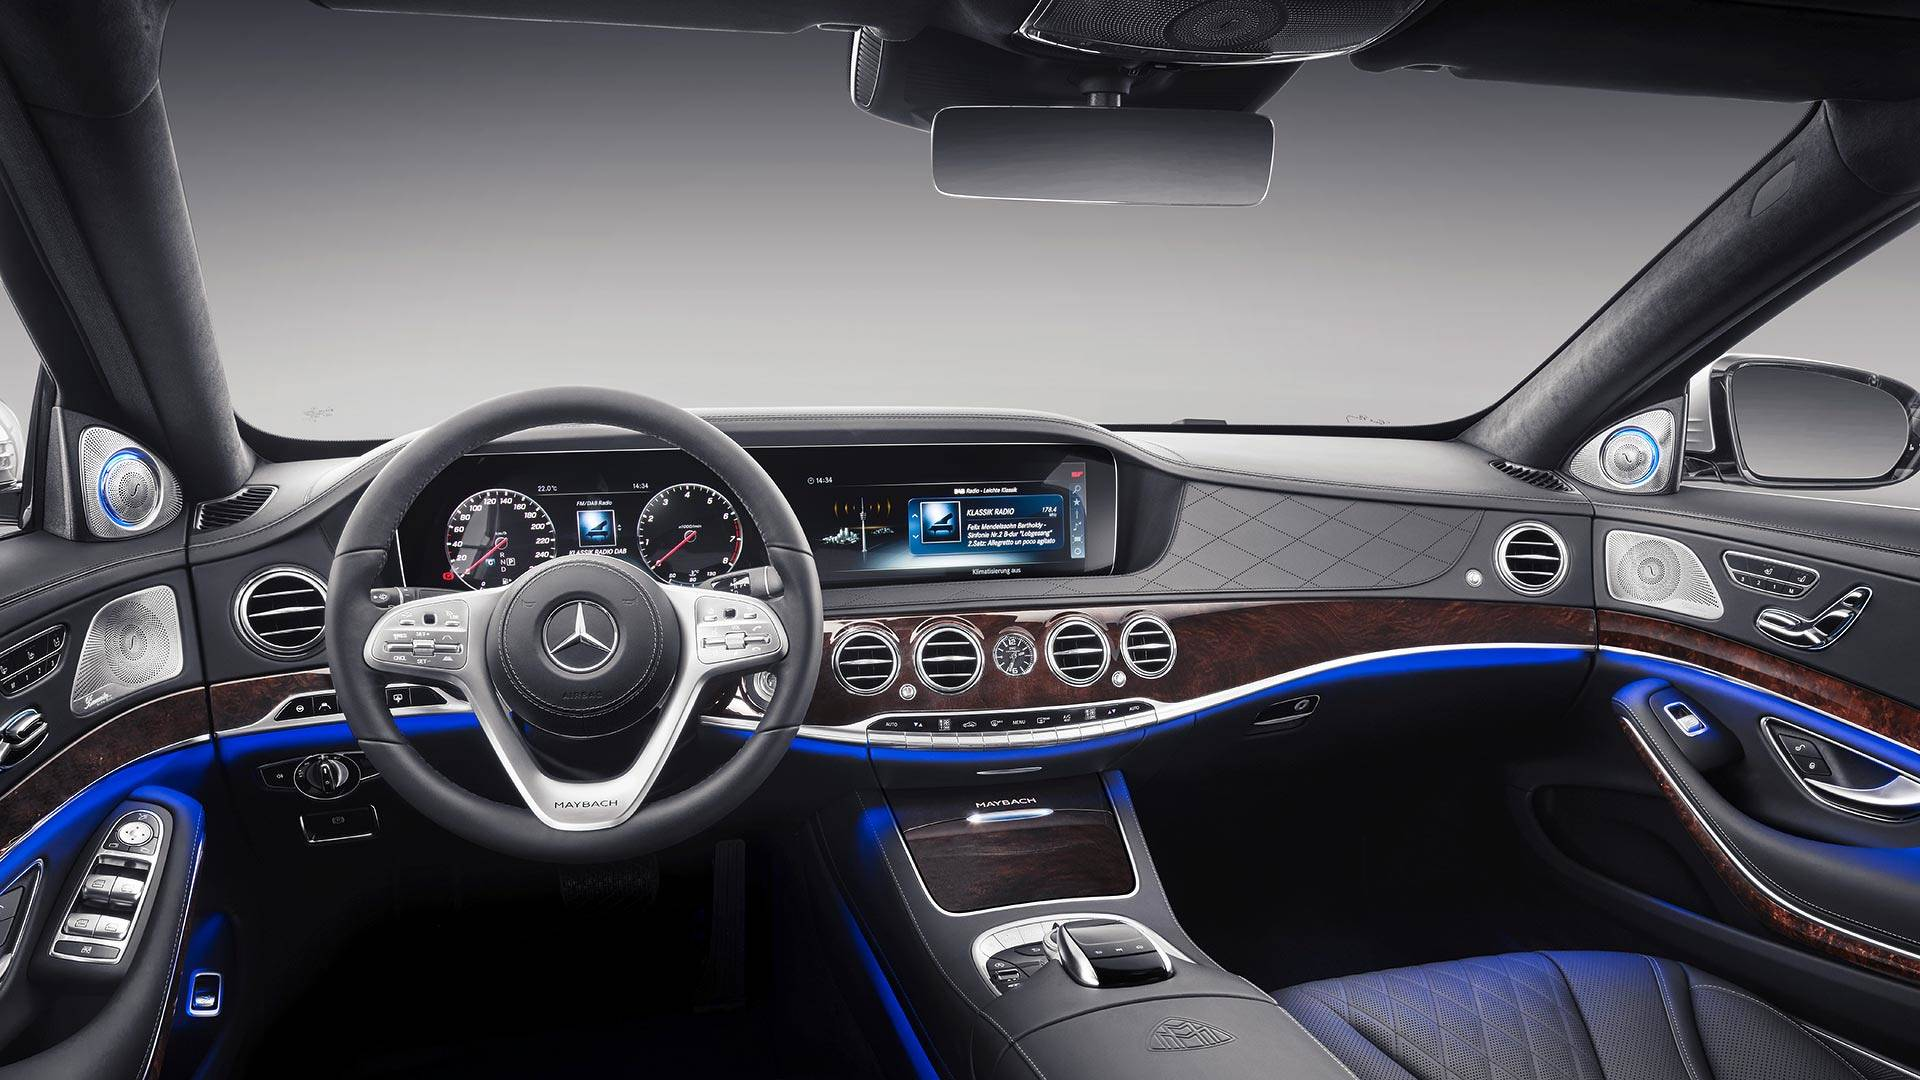 2019 benz s550 2019 Mercedes Maybach S Class Looks Majestic In The Real World 2019 benz s550